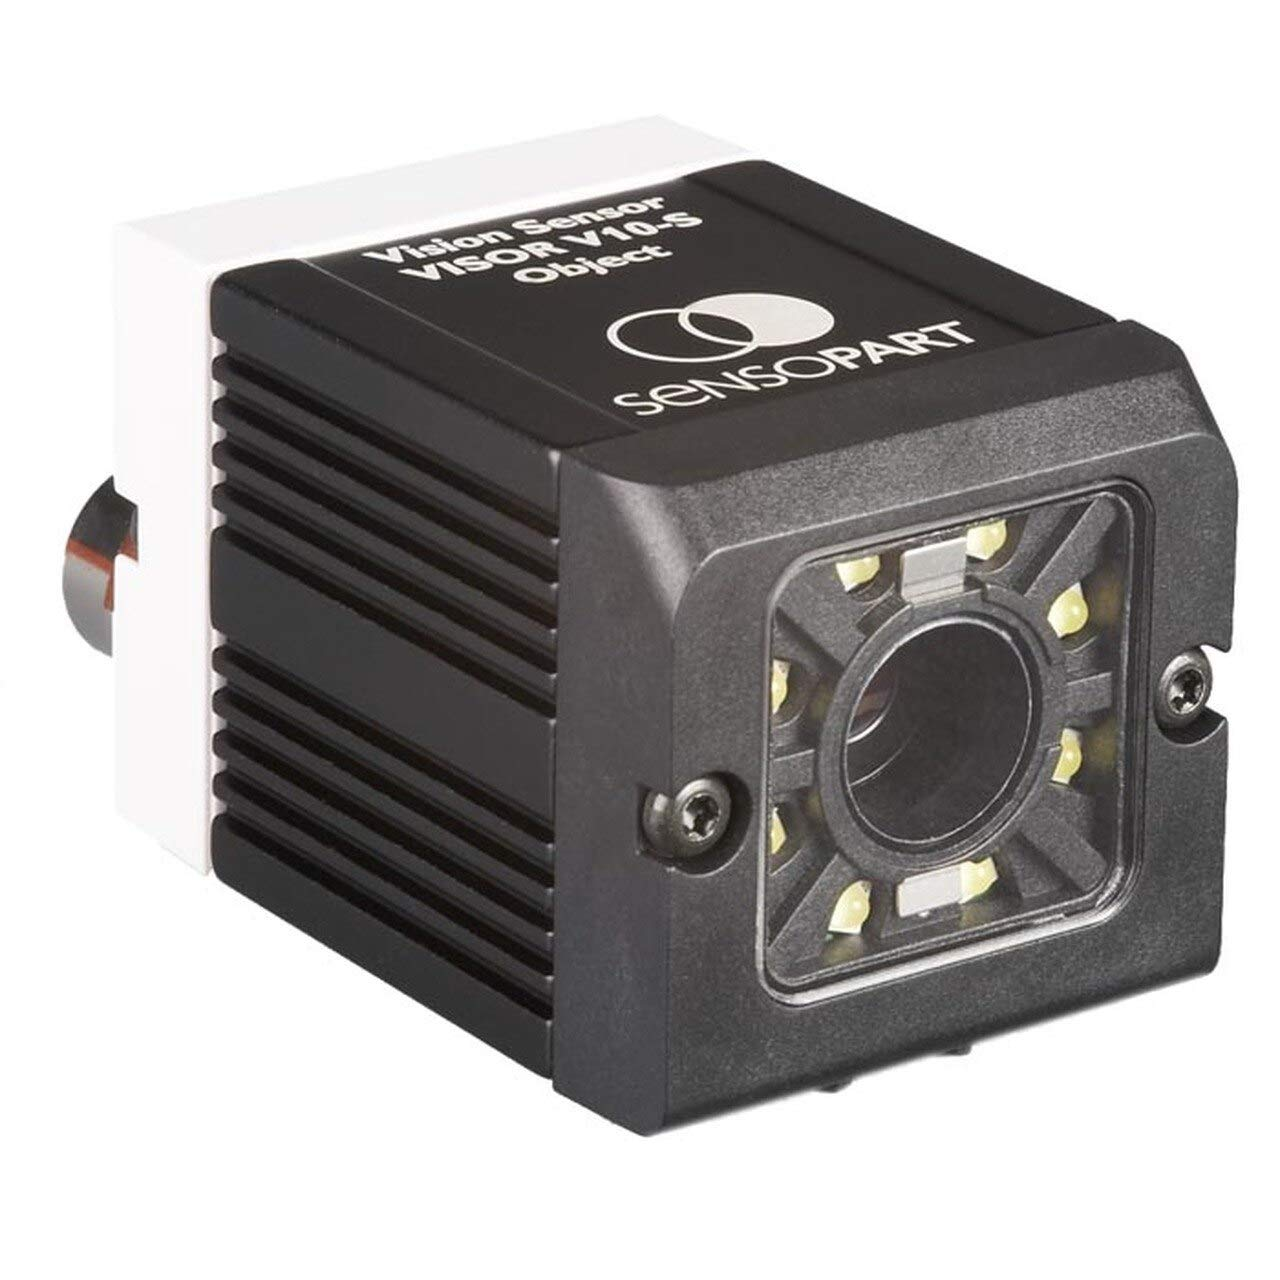 SensoPart V20-CR-S2-W12 Code Reader,Standard,1D//2D,12mm,White LEDs,1280x1024,RS422//RS232,EtherNET//IP 536-91044